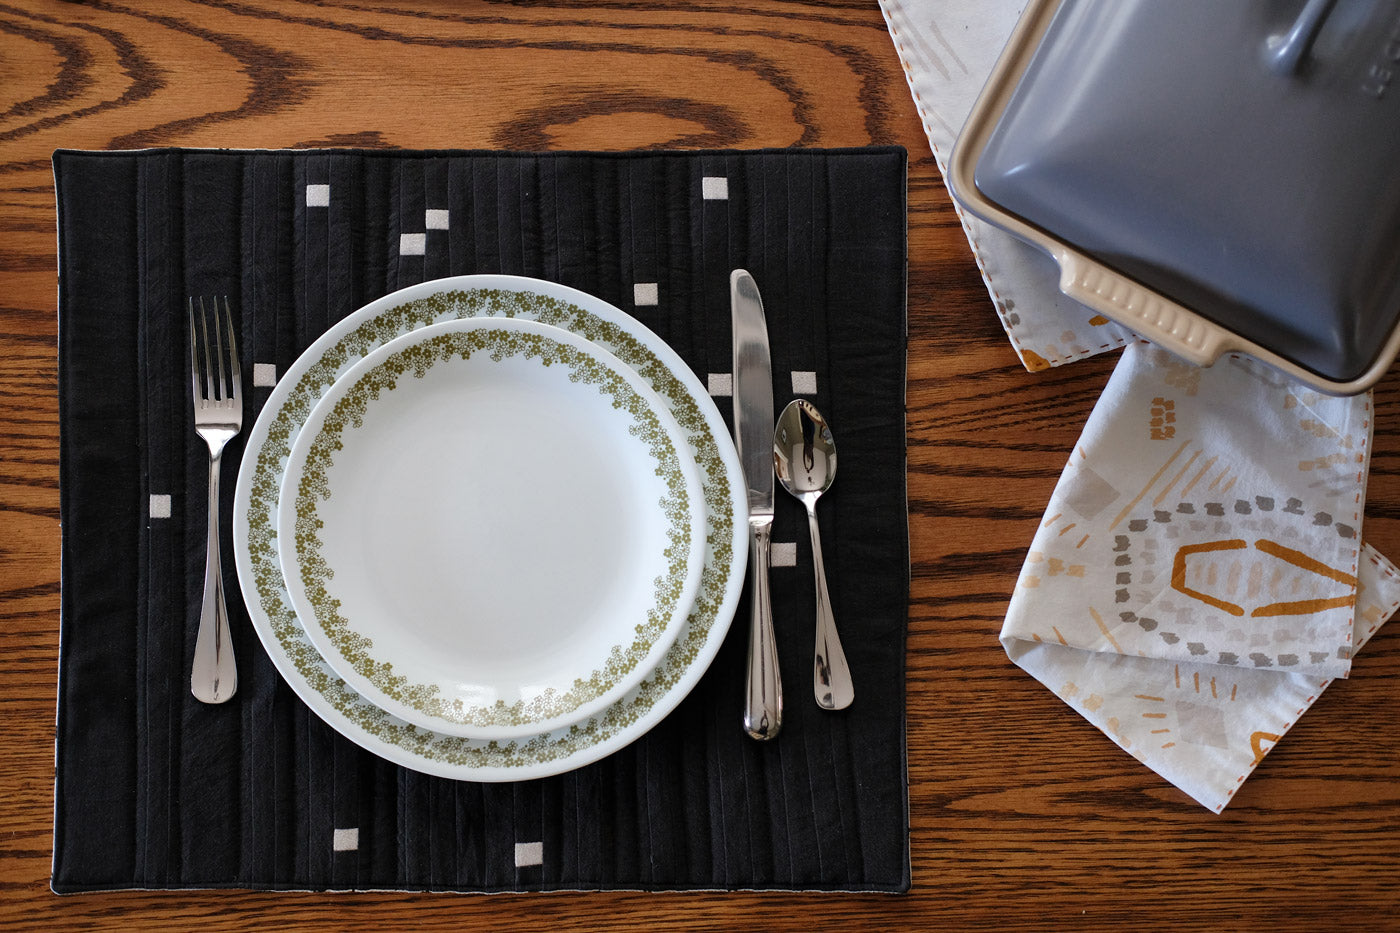 Sagittarius Placemat set with plates, silverware and napkins